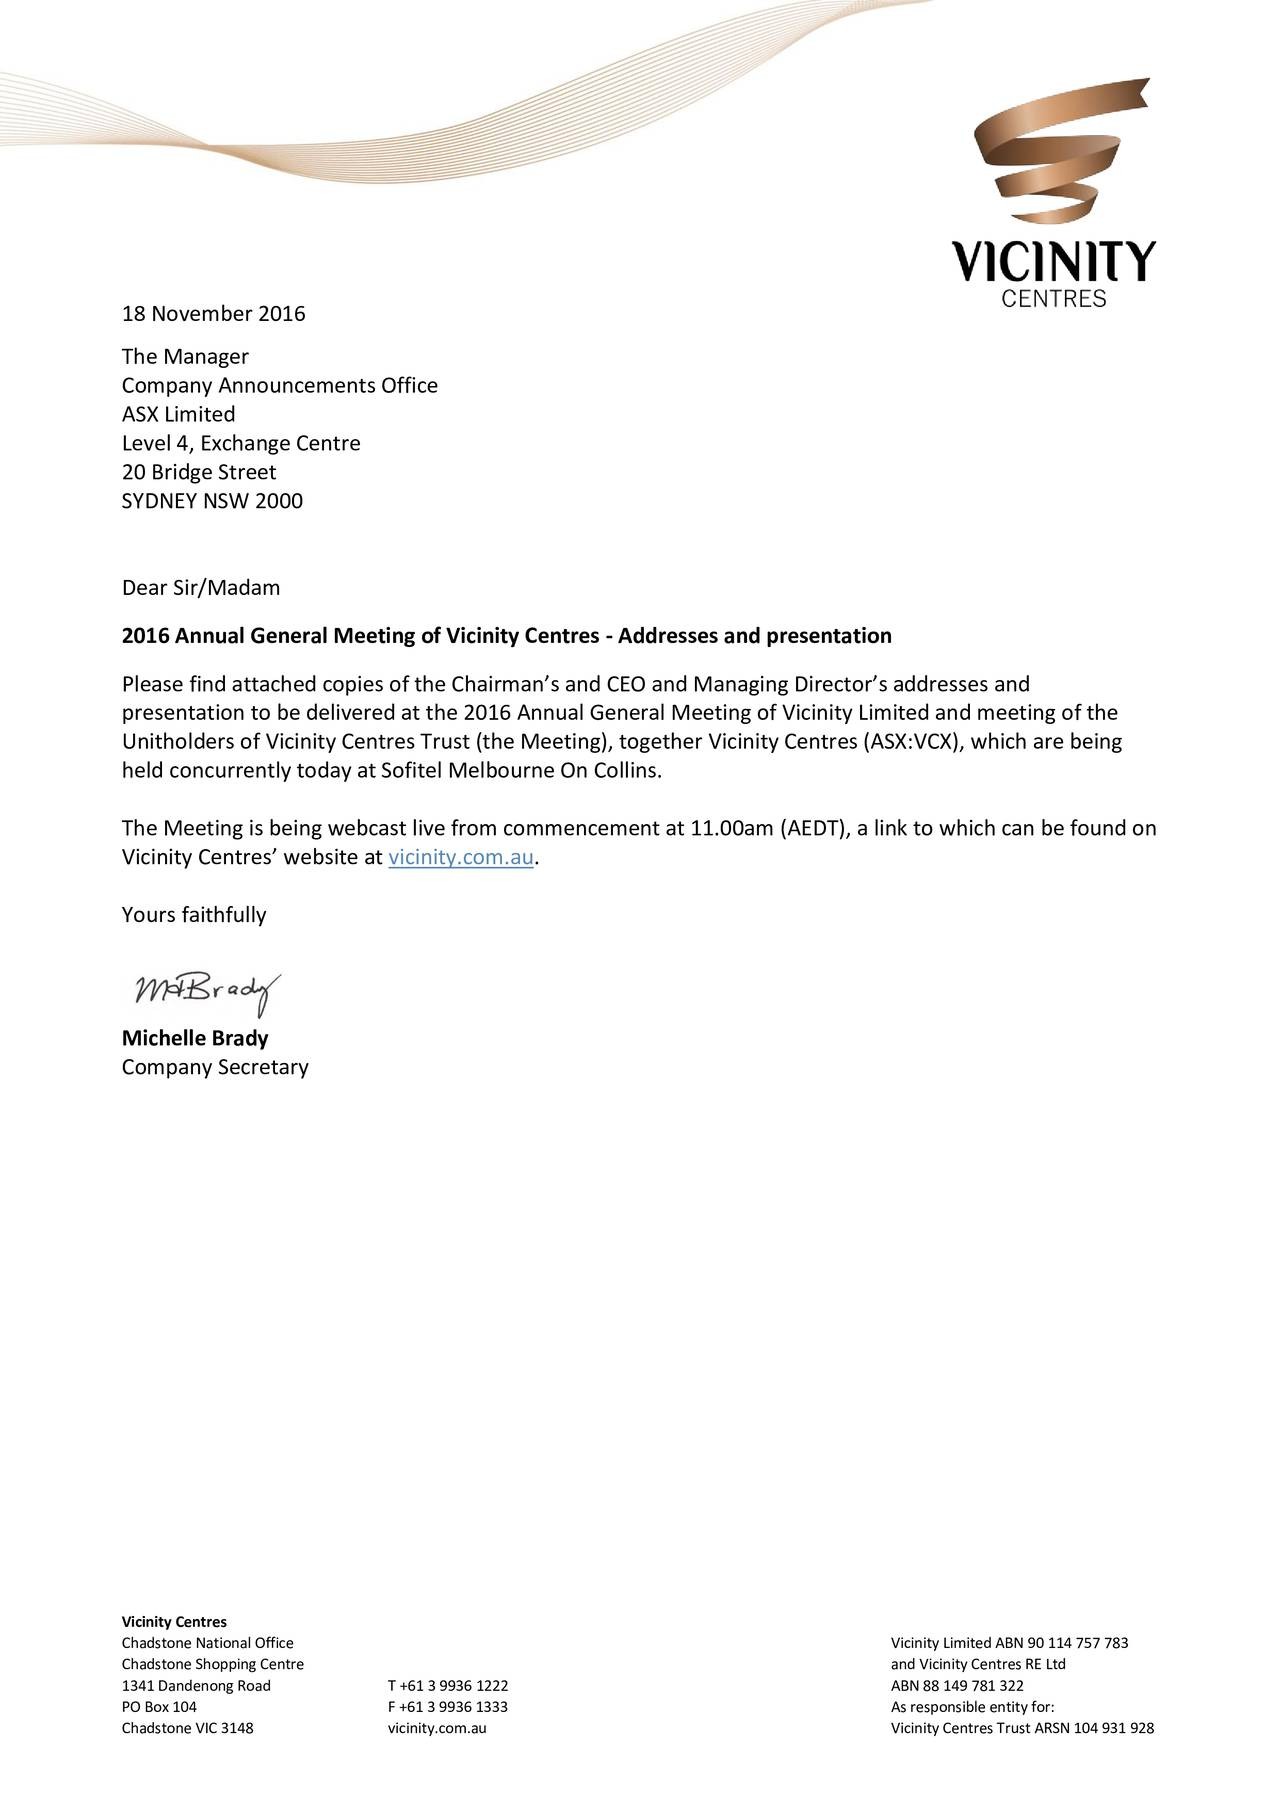 The Manager Company Announcements Office ASX Limited Level 4, Exchange Centre 20 Bridge Street SYDNEY NSW 2000 Dear Sir/Madam 2016 Annual General Meeting of Vicinity Centres - Addresses and presentation Please find attached copies of the Chairmans and CEO and Managing Directors addresses and presentation to be delivered at the 2016 Annual General Meeting of Vicinity Limited and meeting of the Unitholders of Vicinity Centres Trust (the Meeting), together Vicinity Centres (ASX:VCX), which are being held concurrently today at Sofitel Melbourne On Collins. The Meeting is being webcast live from commencement at 11.00am (AEDT), a link to which can be found on Vicinity Centres website at vicinity.com.au. Yours faithfully Michelle Brady Company Secretary Vicinity Centres Chadstone National Office Vicinity Limited ABN 90 114 757 783 Chadstone Shopping Centre and Vicinity Centres RE Ltd 1341 Dandenong Road T +61 3 9936 1222 ABN 88 149 781 322 PO Box 104 F +61 3 9936 1333 As responsible entity for: Chadstone VIC 3148 vicinity.com.au Vicinity Centres Trust ARSN 104 931 928